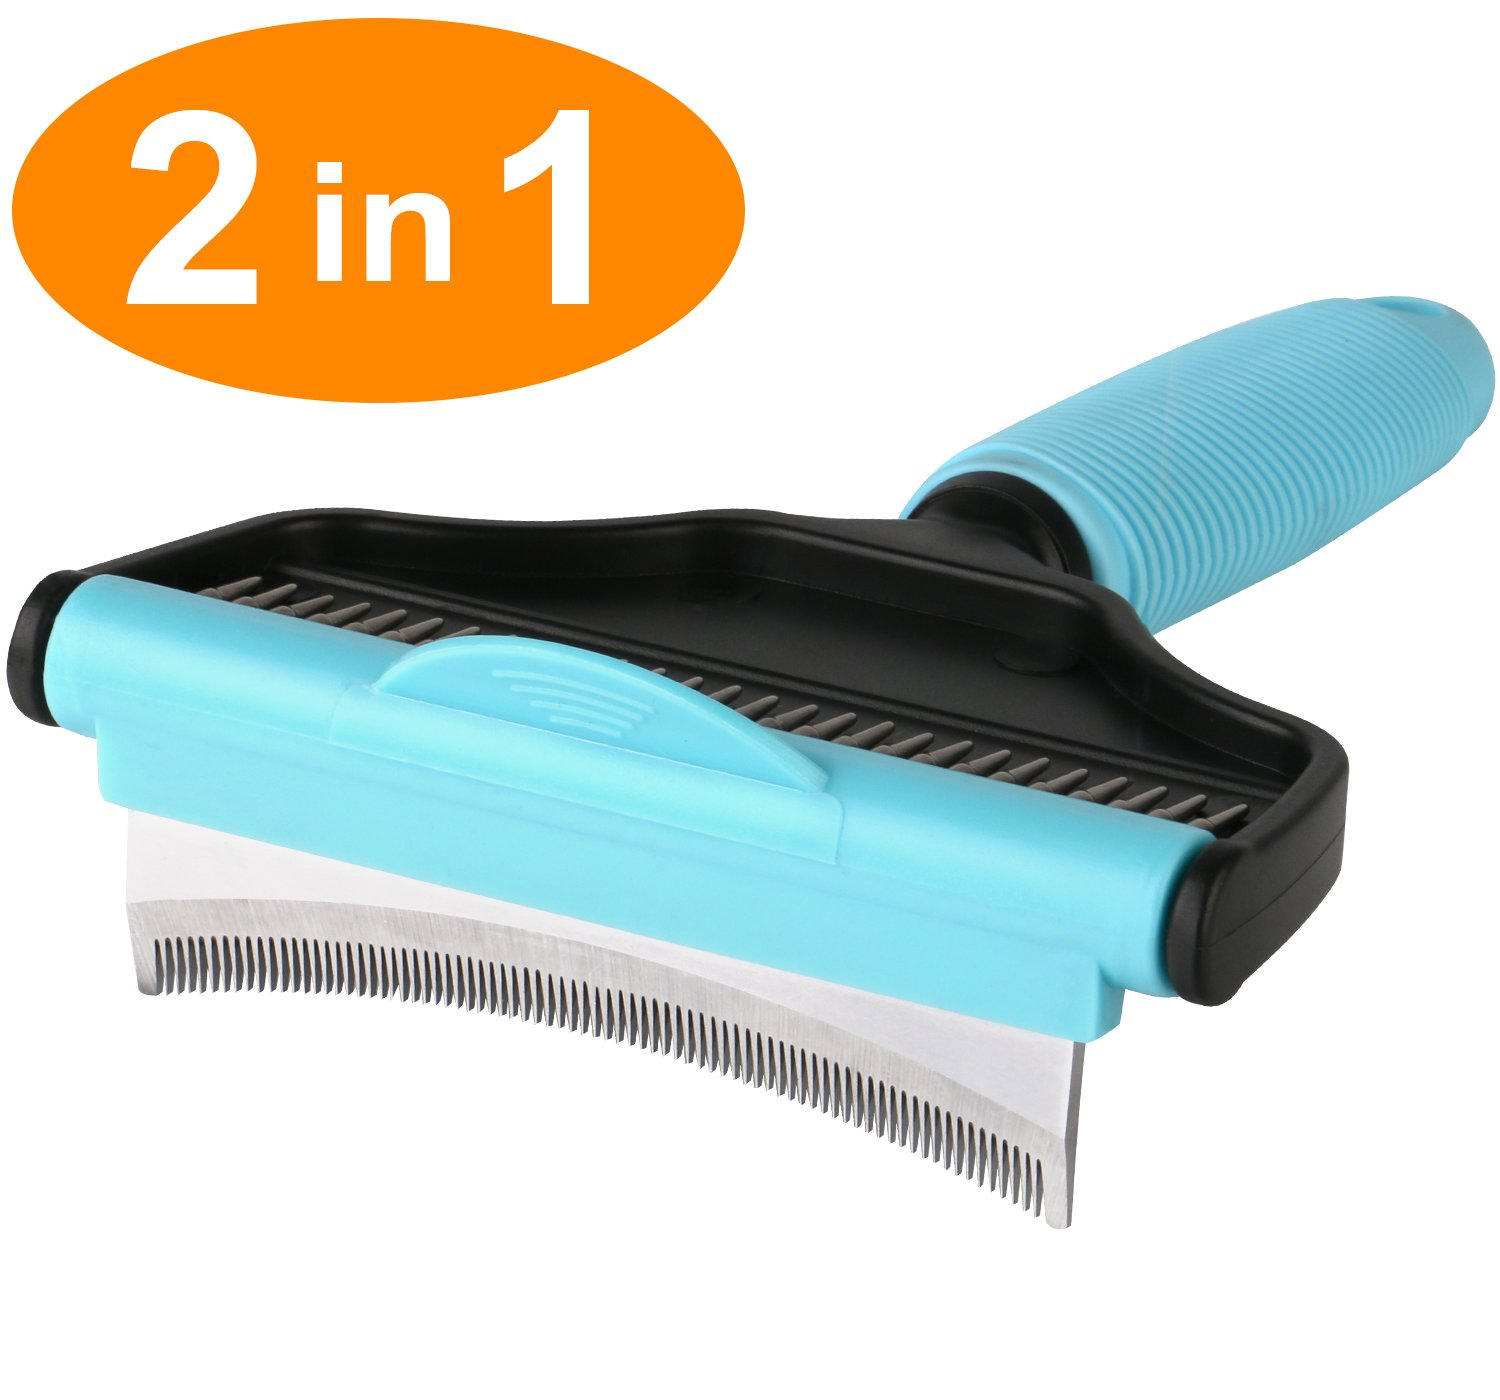 Jiefeike Dog Brushes for Shedding, Pet Grooming Deshedding Brush 2 in 1 Comb Effectively By Up To 95% U-Shaped Removing Hair Professional Tool Undercoat Rake for Small Large Dog Short Long Hair Cat